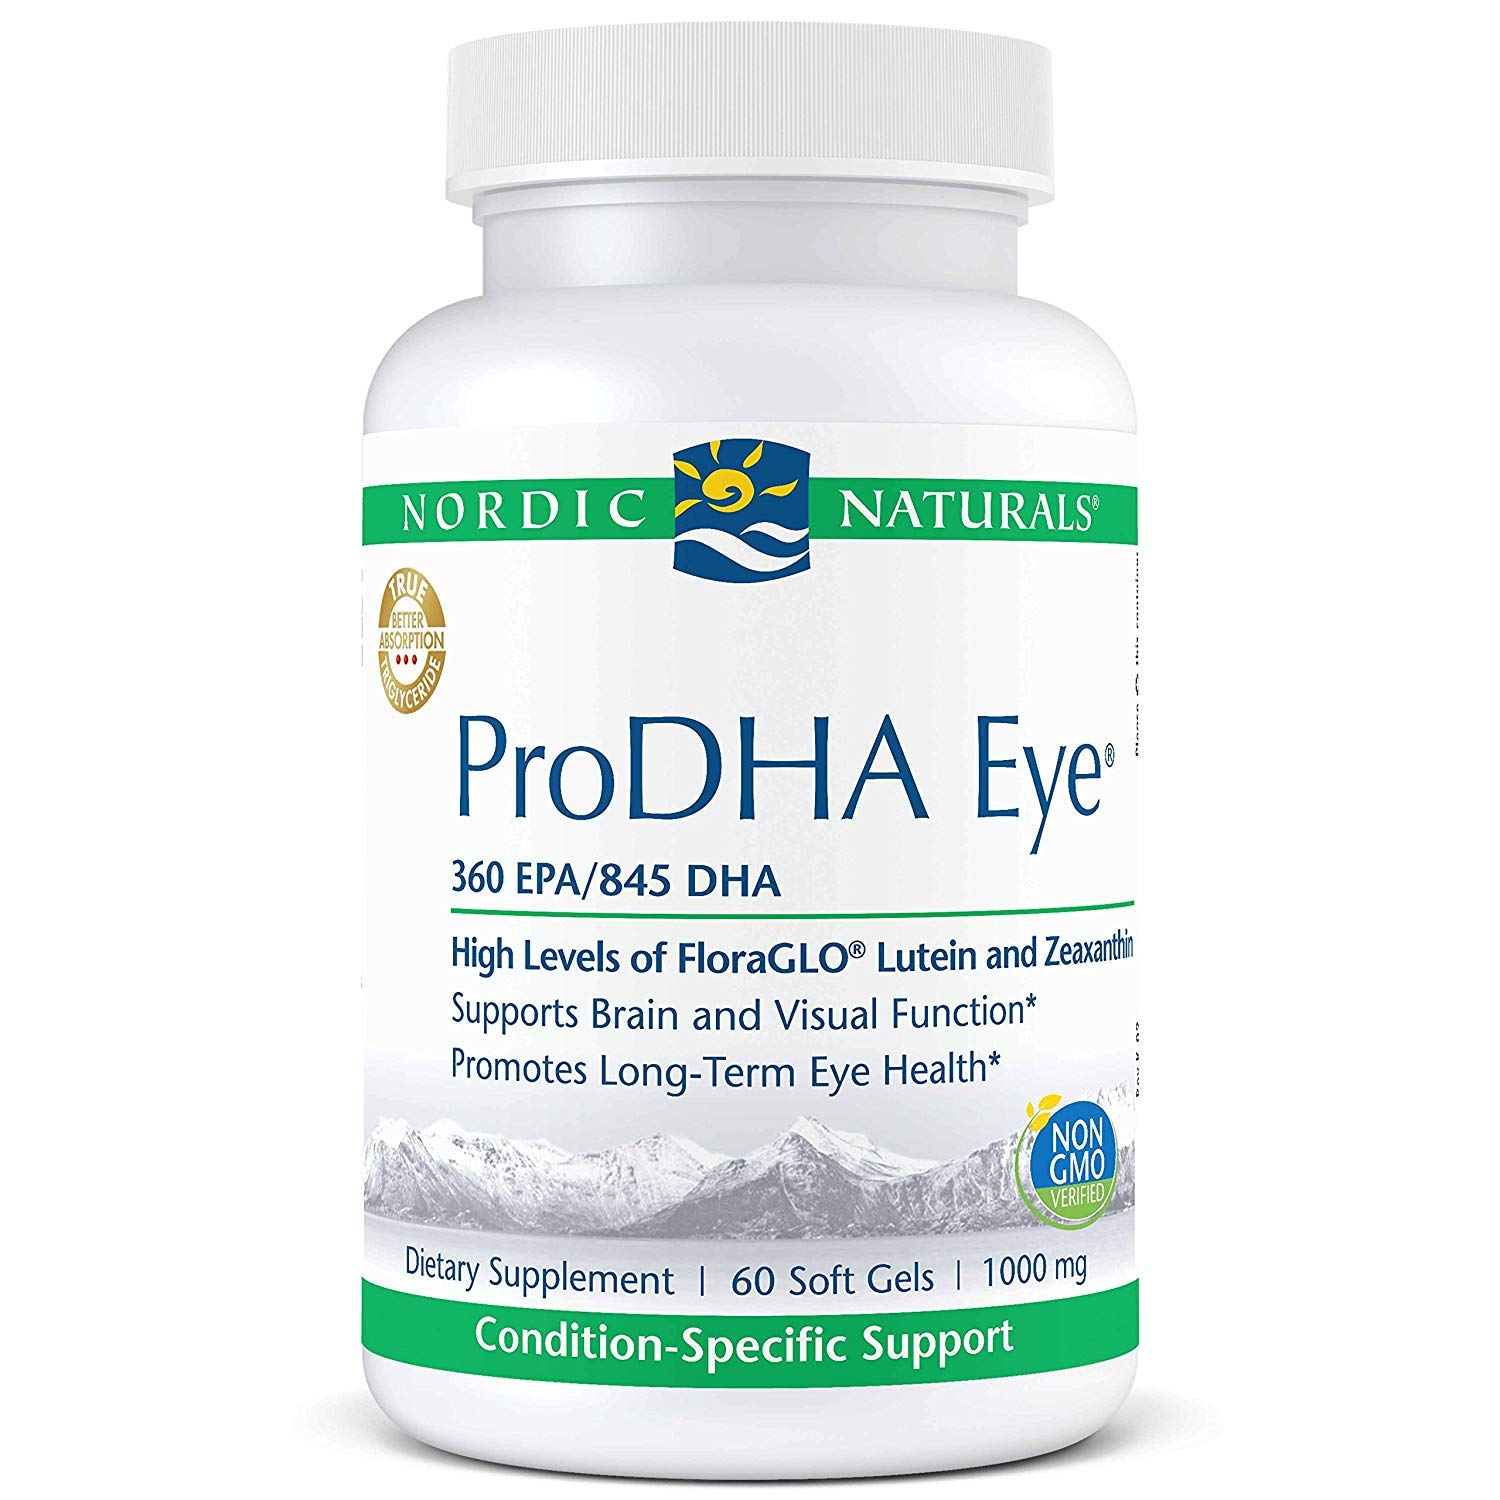 Nordic Naturals Prodha Eye Soft Gels, 60 Count by Nordic Naturals